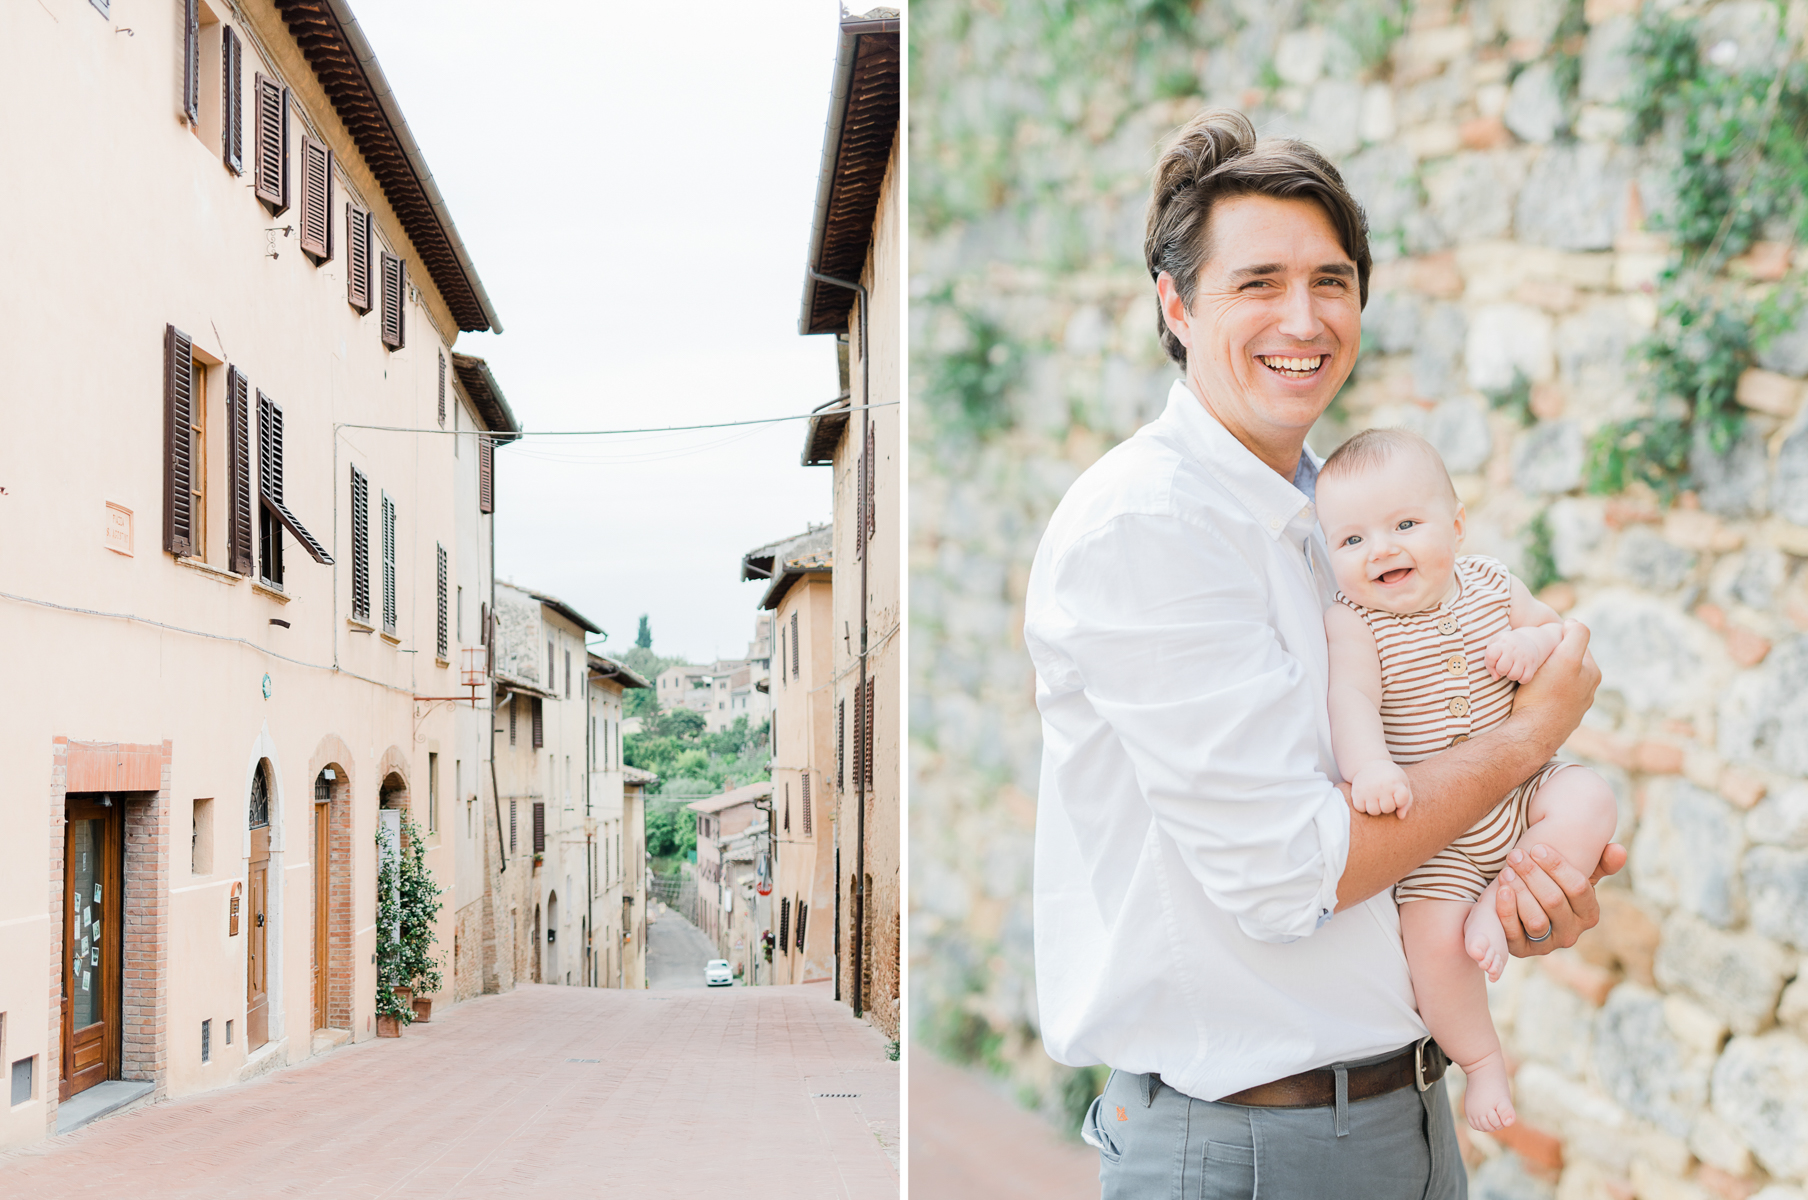 AKP_San_Gimignano_Tuscany_family_shoot_wedding_engagement_photographer-10.jpg